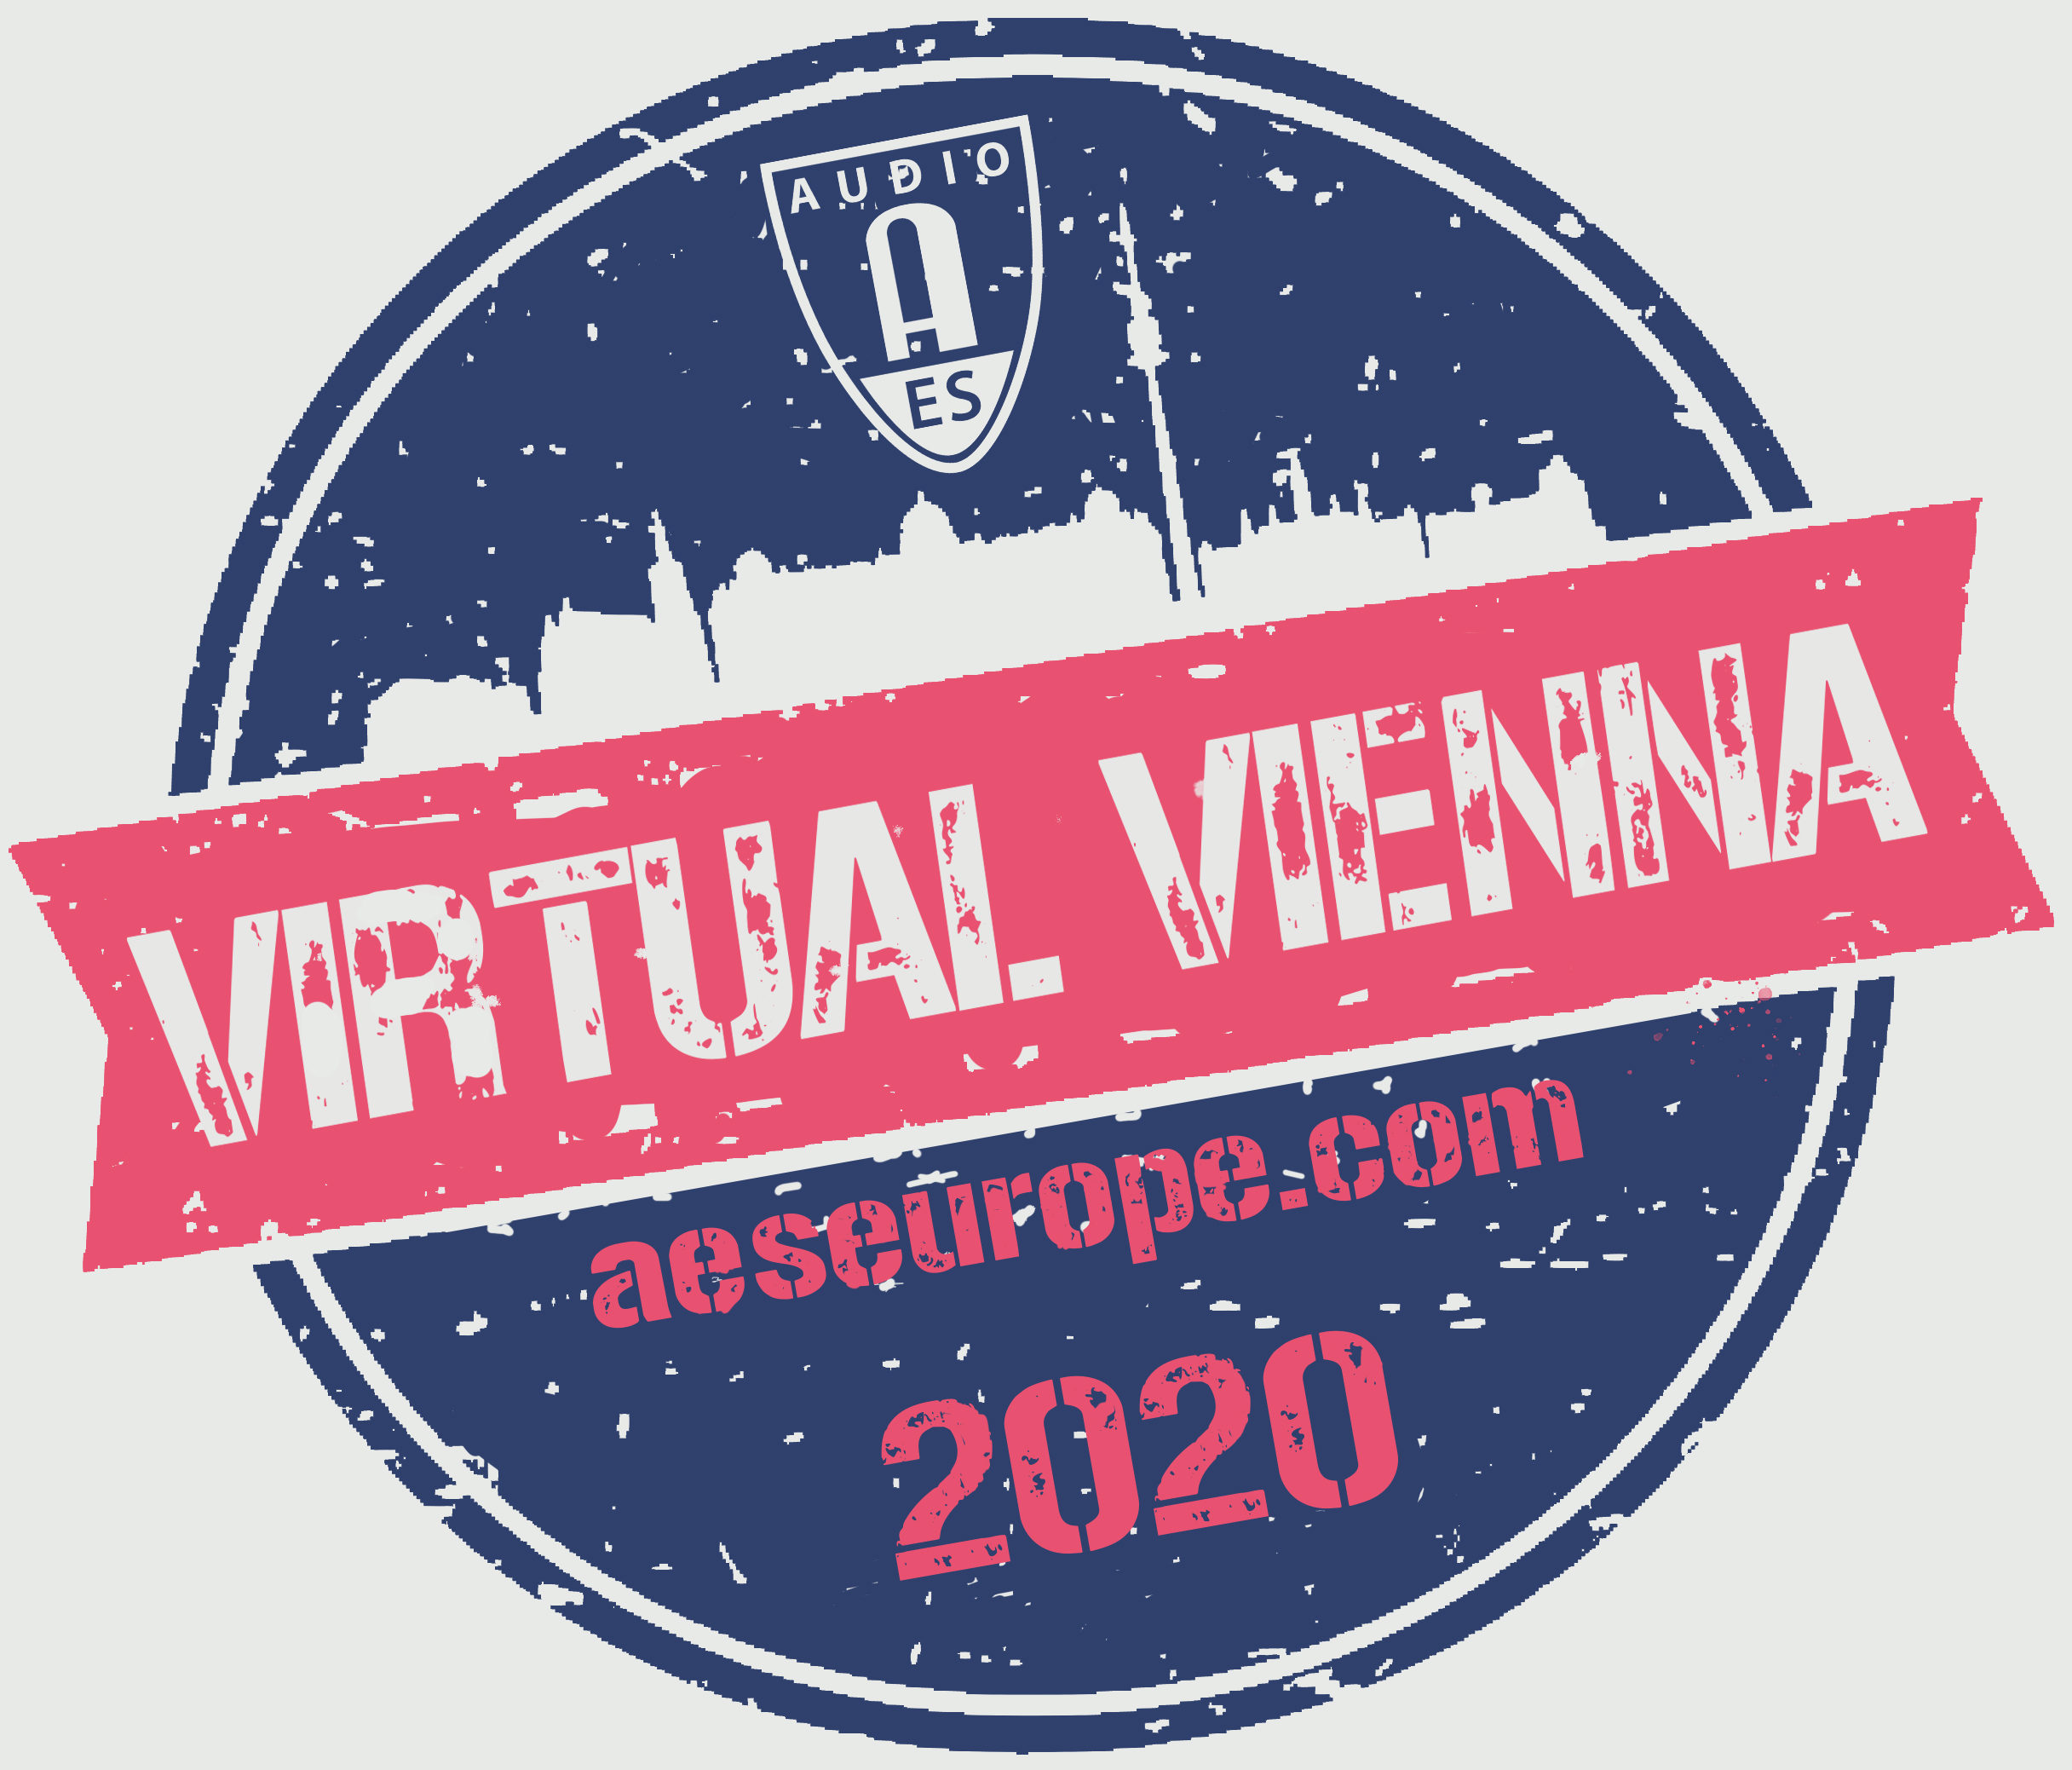 Registration is now open for the AES Virtual Vienna Convention online events, June 2 – 5